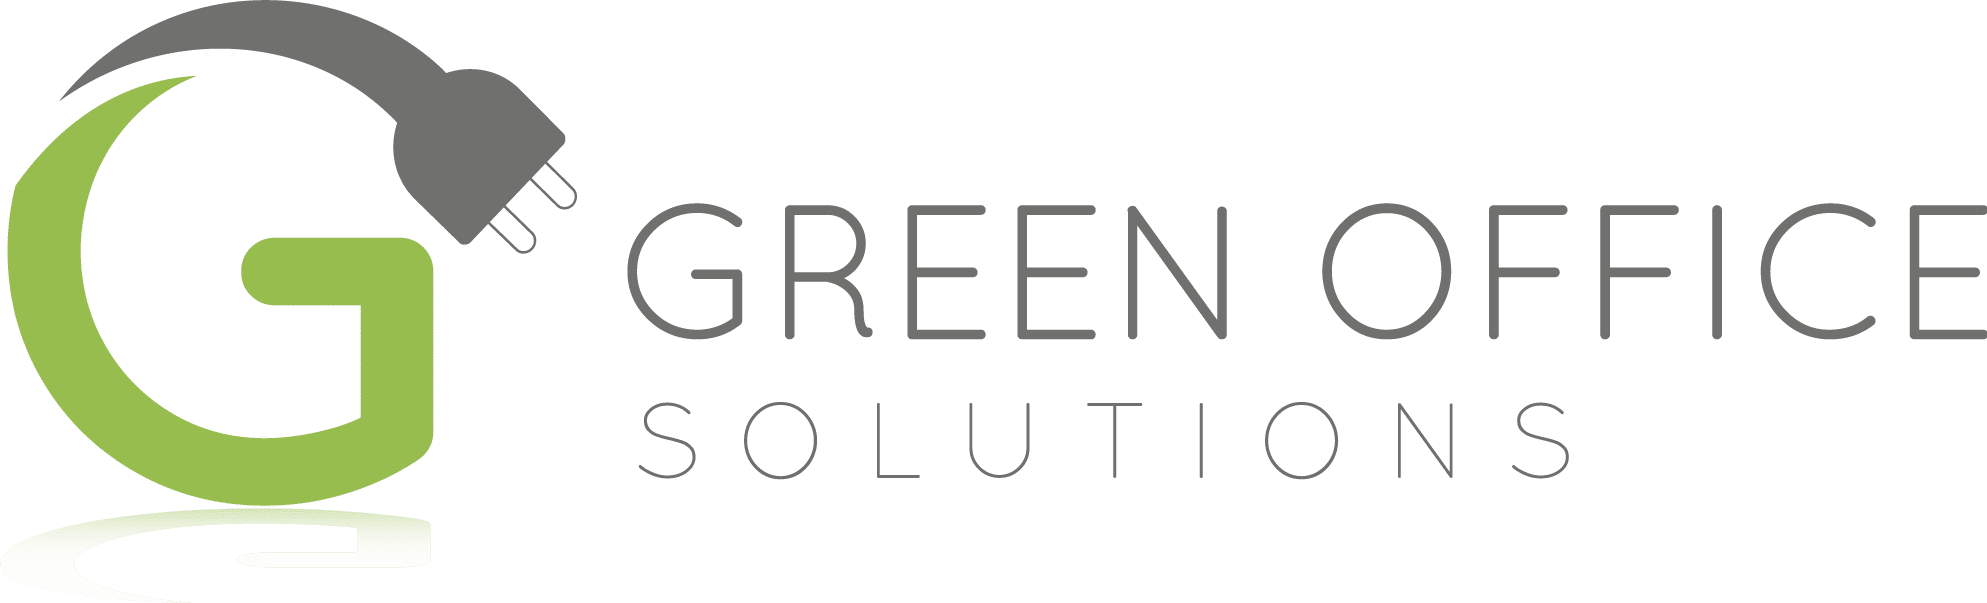 Green Office Solutions